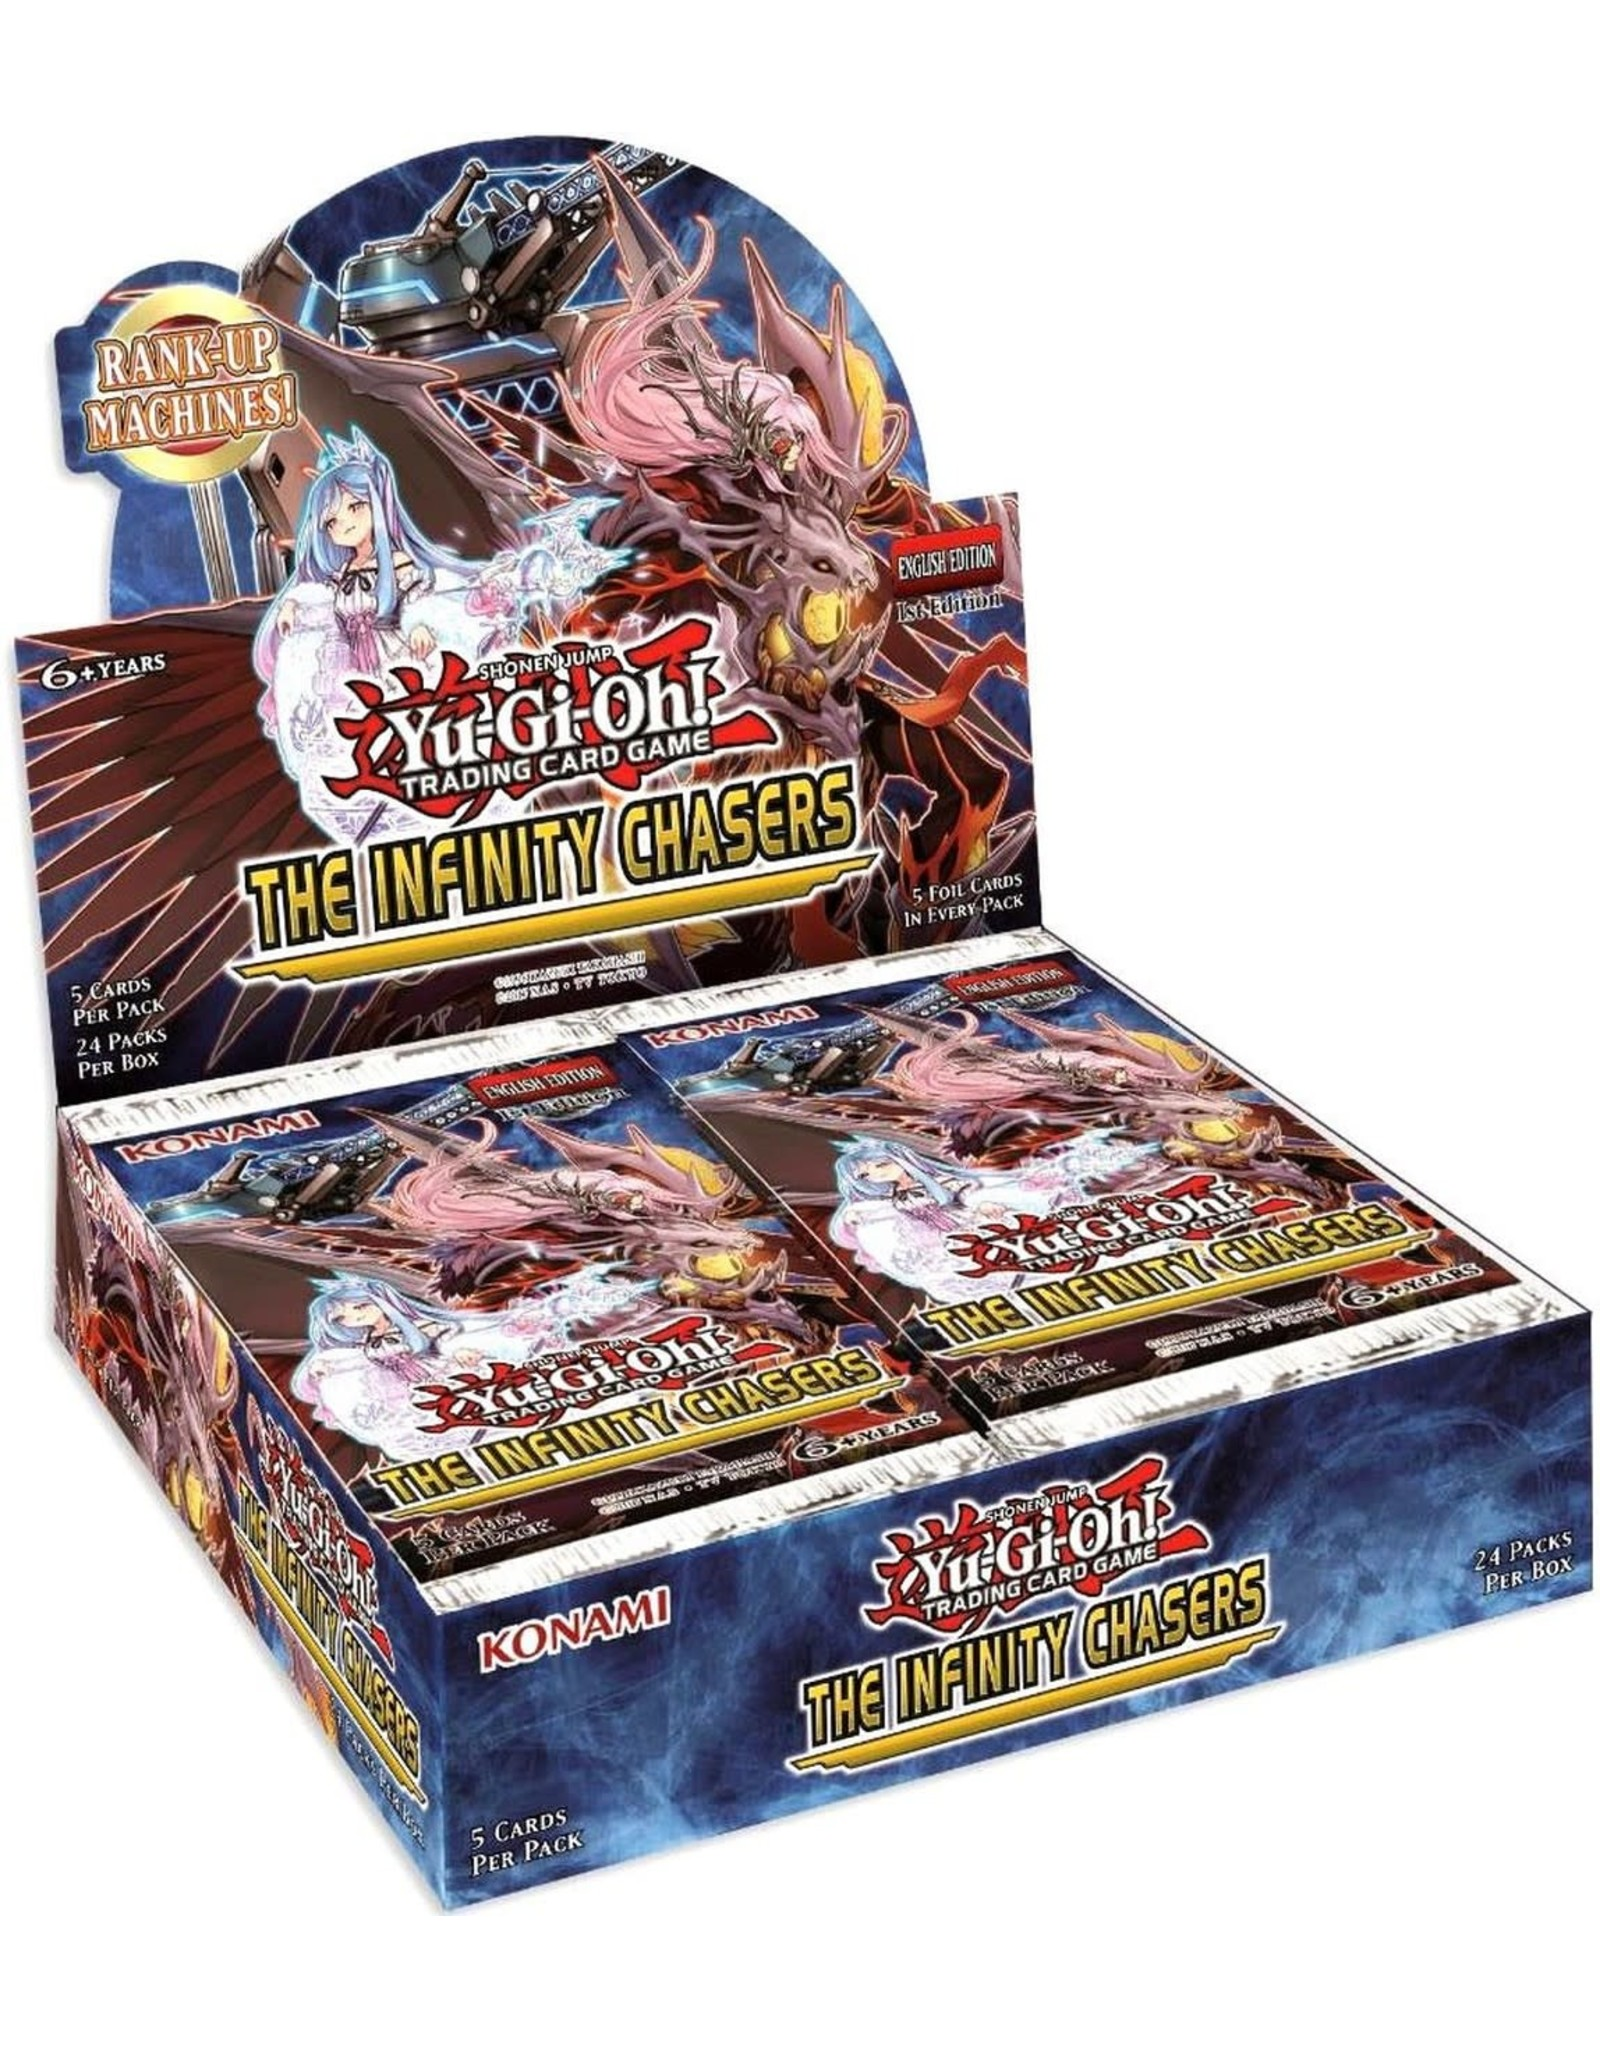 Konami INFINITY CHASERS BOOSTER BOX